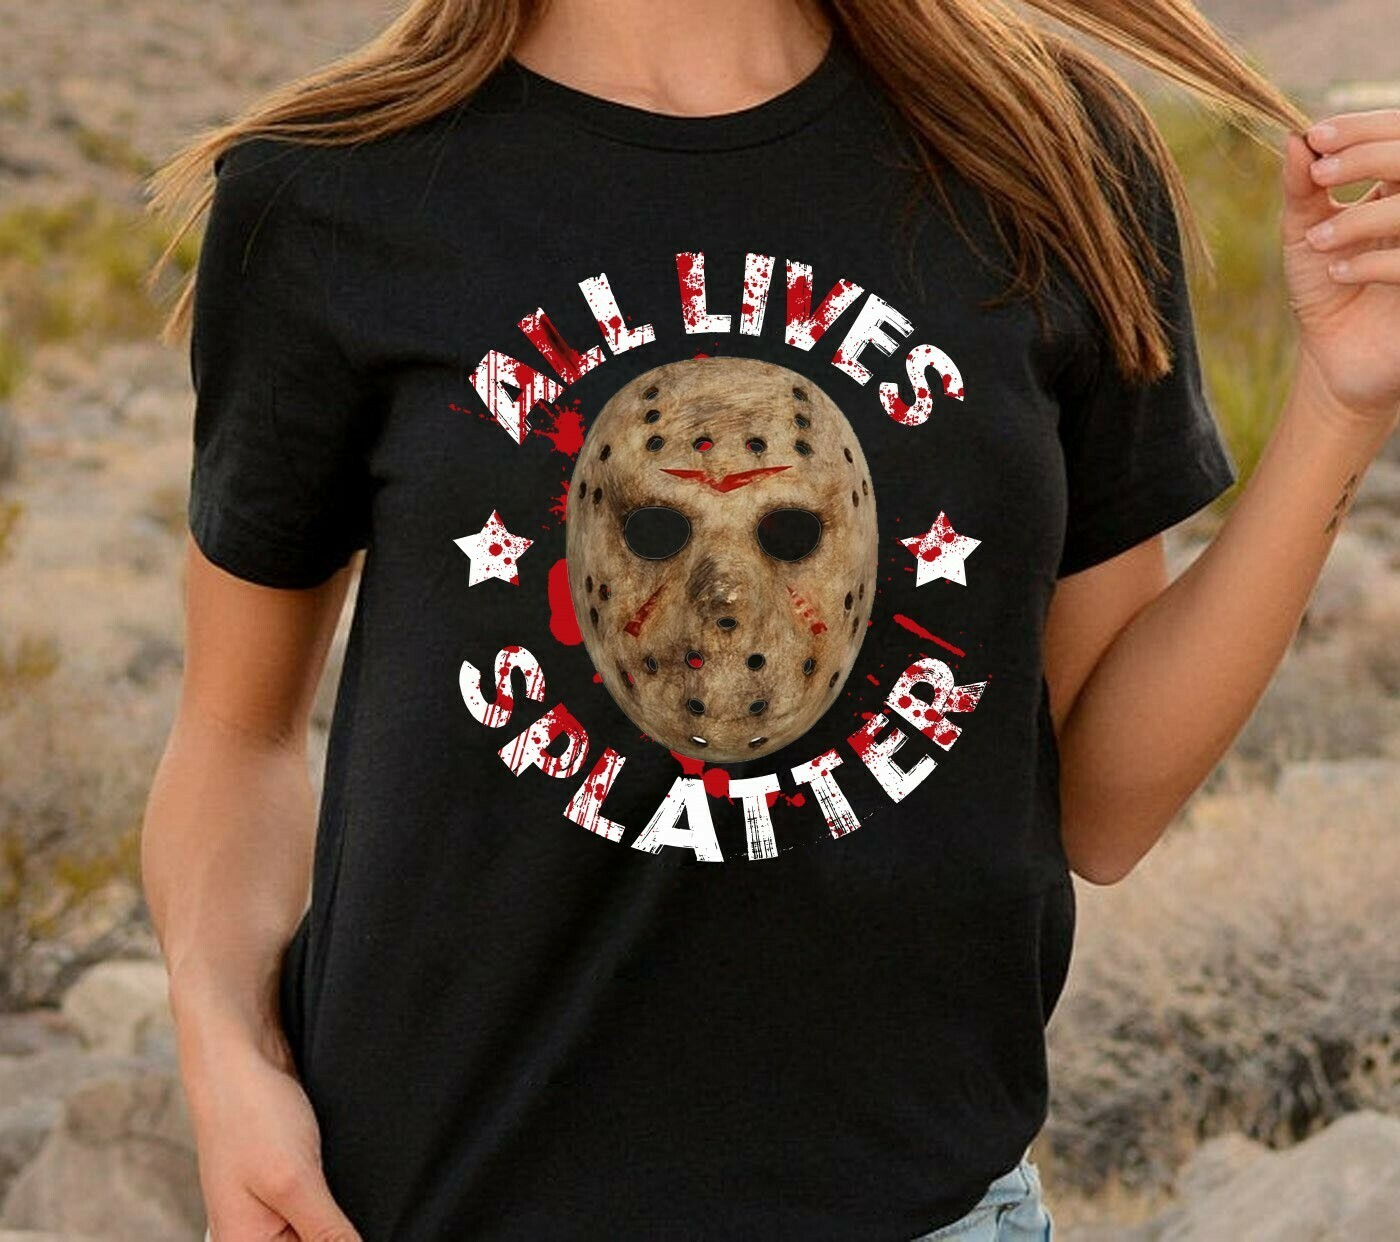 Jason Voorhees All Lives Splatter No Lives Matter Horror Friday The 13th Villains Halloween Movie Mashup Halloween Tee T-Shirt Long Sleeve Sweatshirt Hoodie Jolly Family Gifts